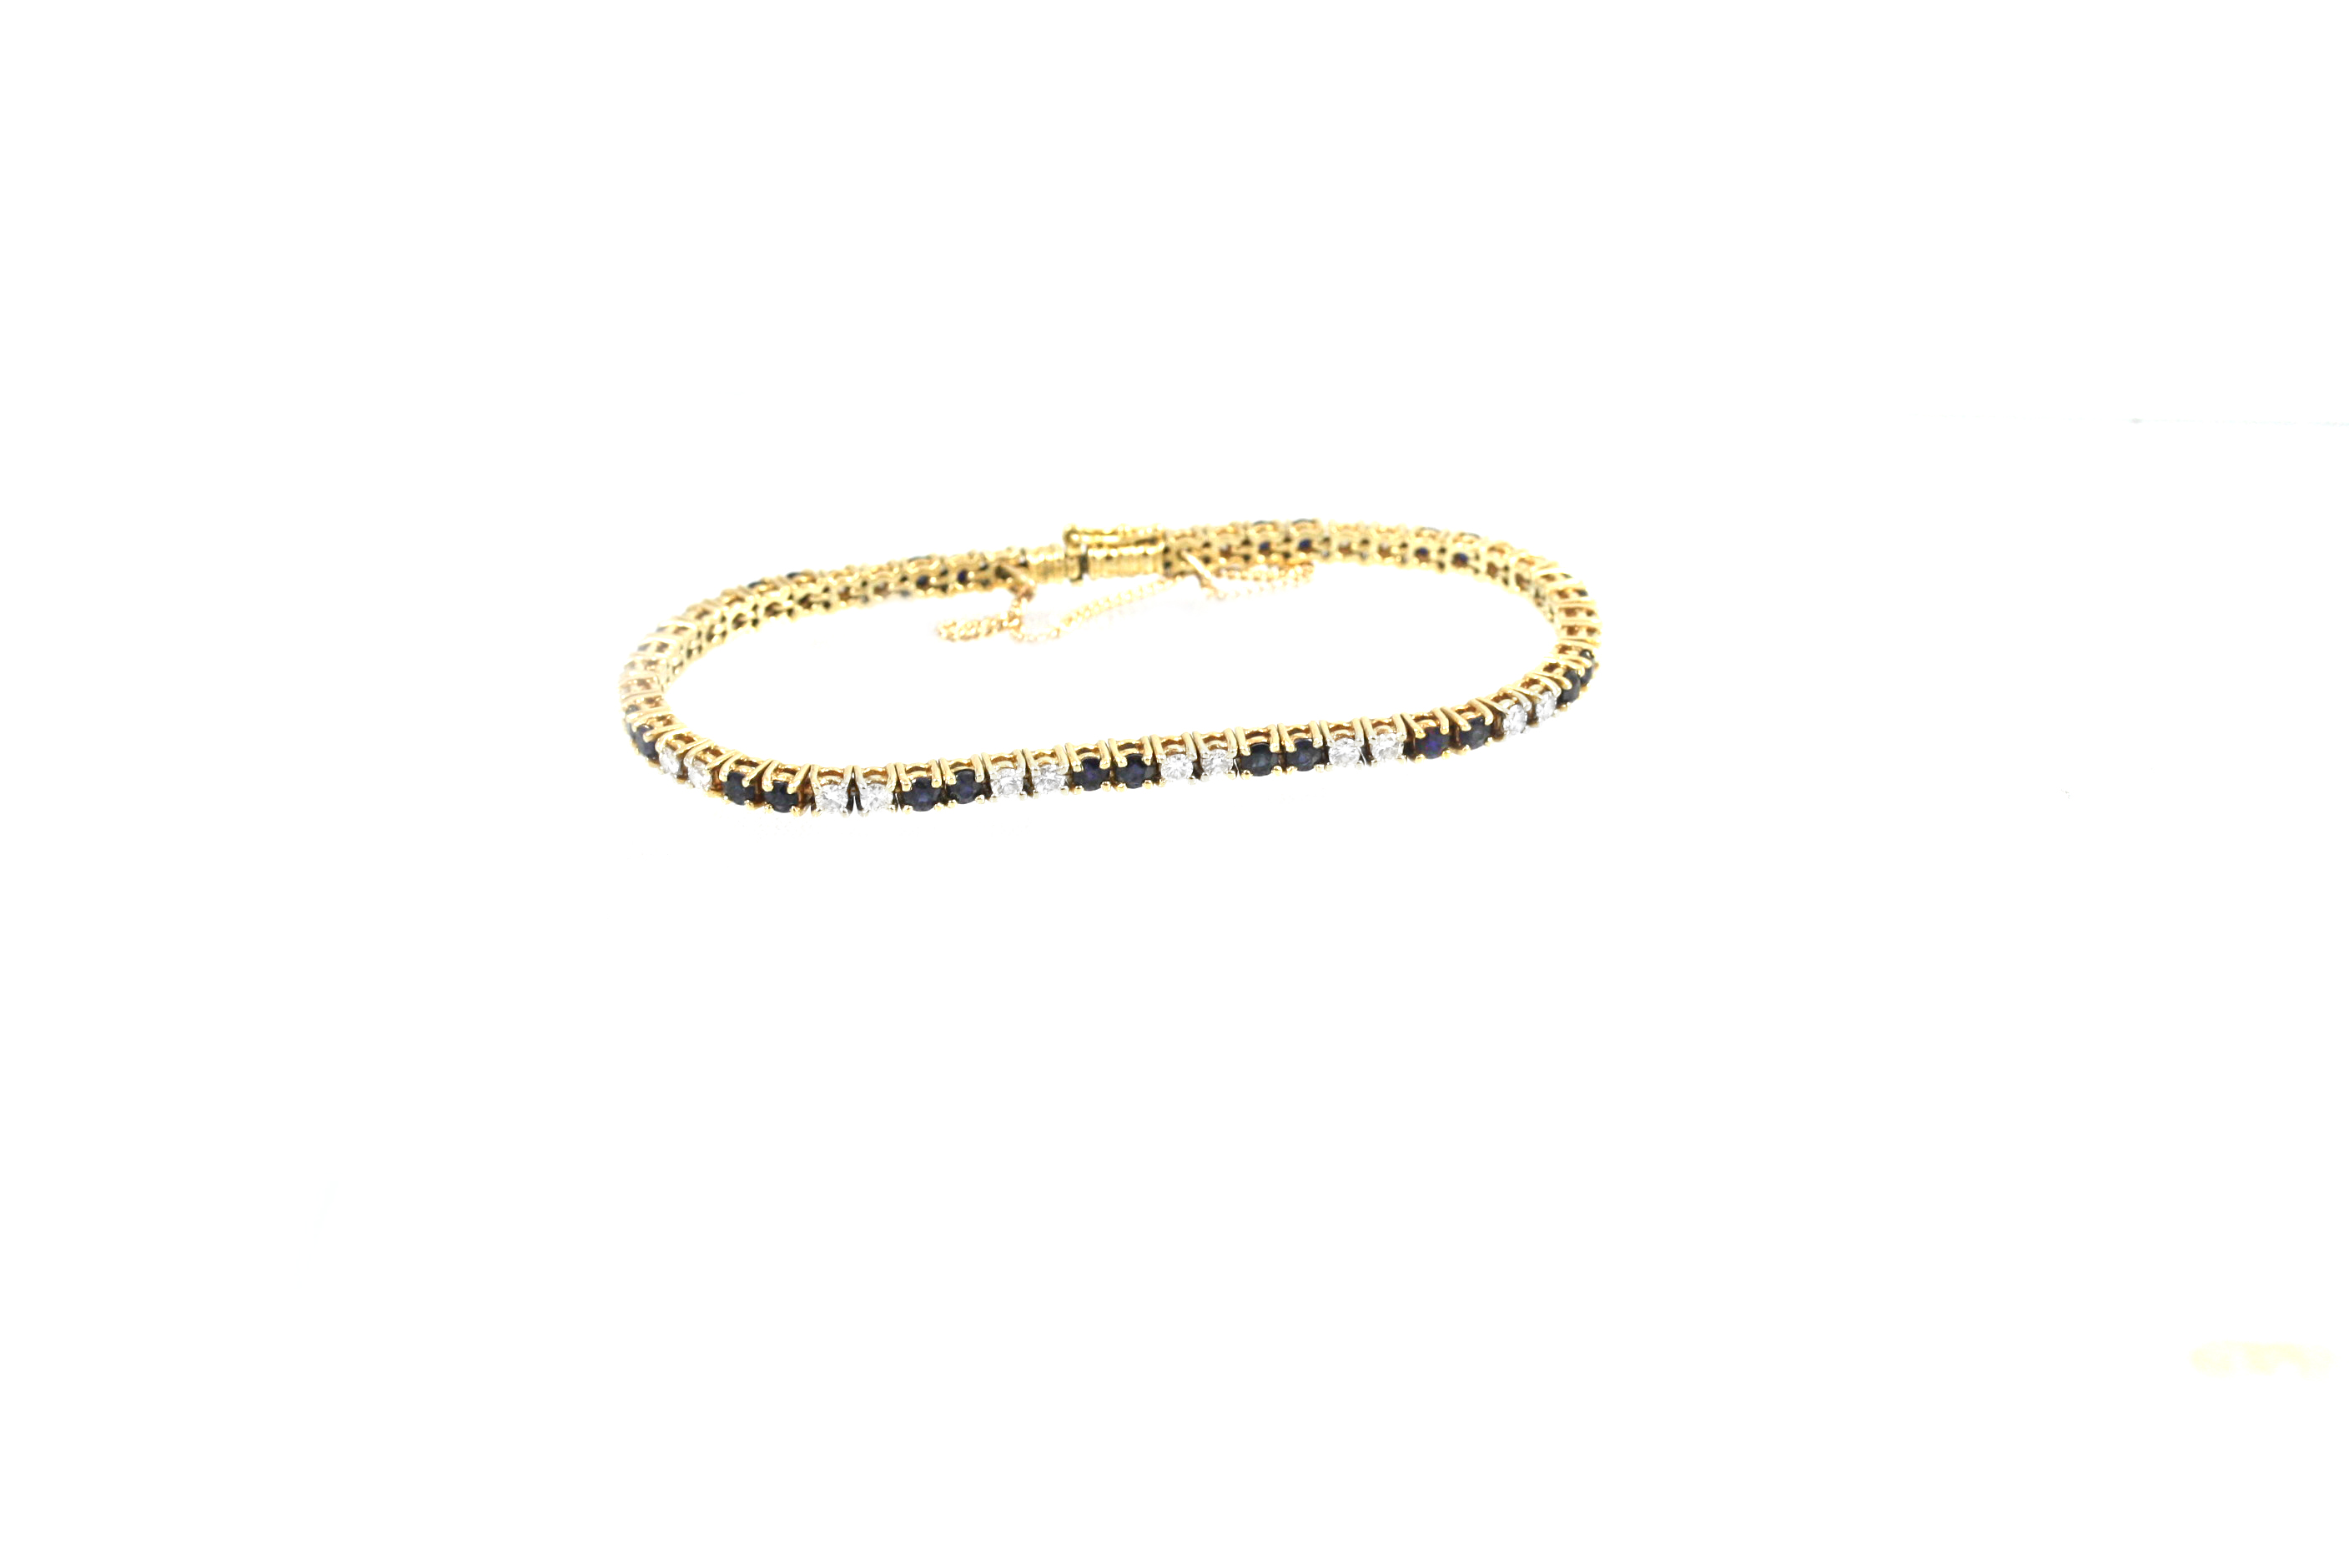 length row designed dwts gross pin of bracelet as gold karat a weight snails approximately inches polished